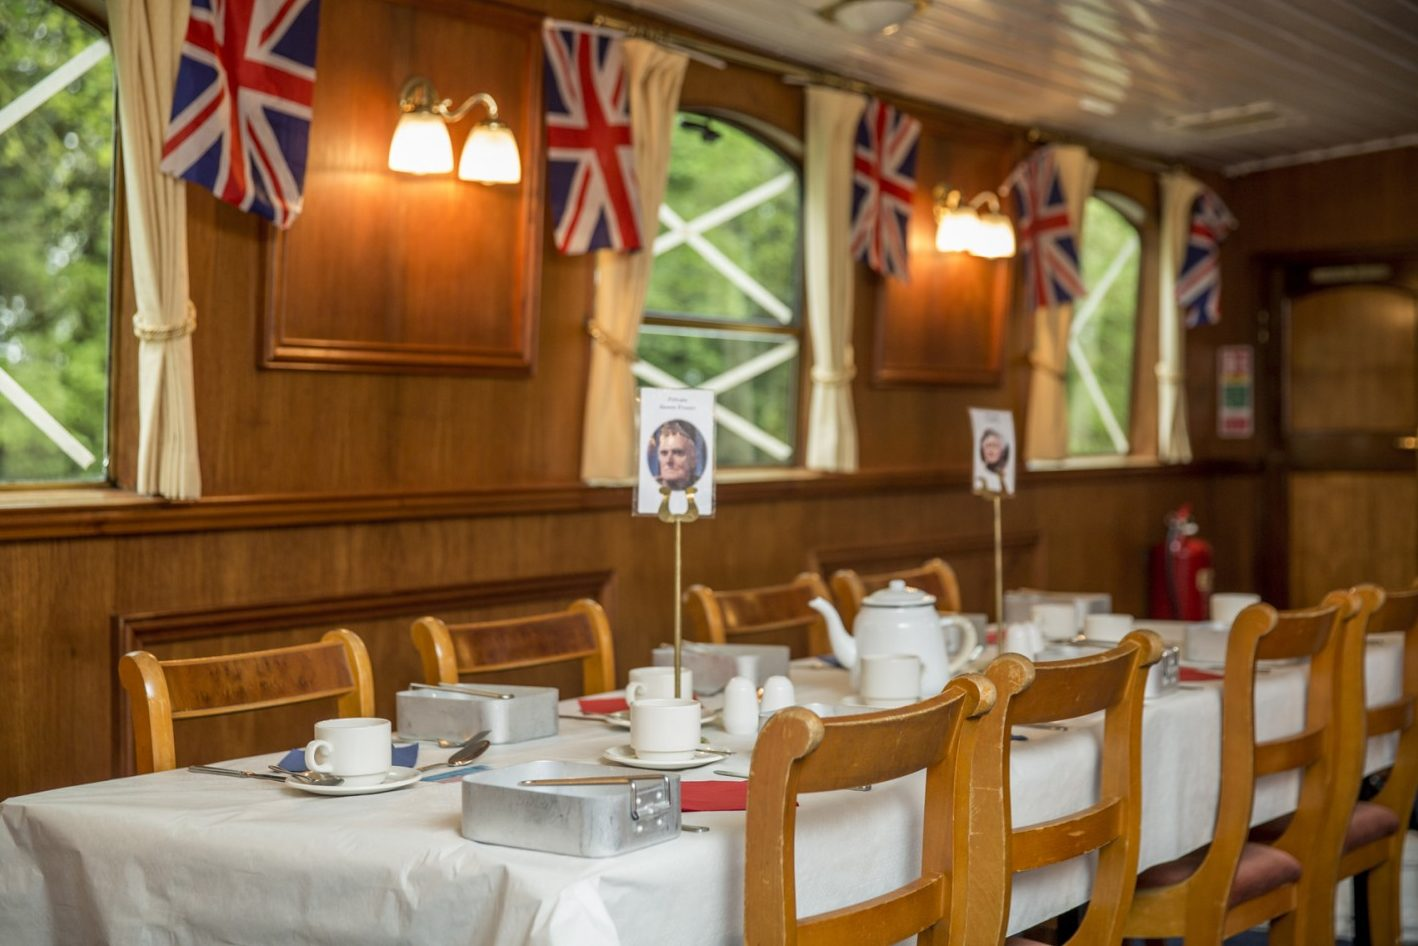 French Brothers Thames Cruise, London - Table set for dinner (NCN)